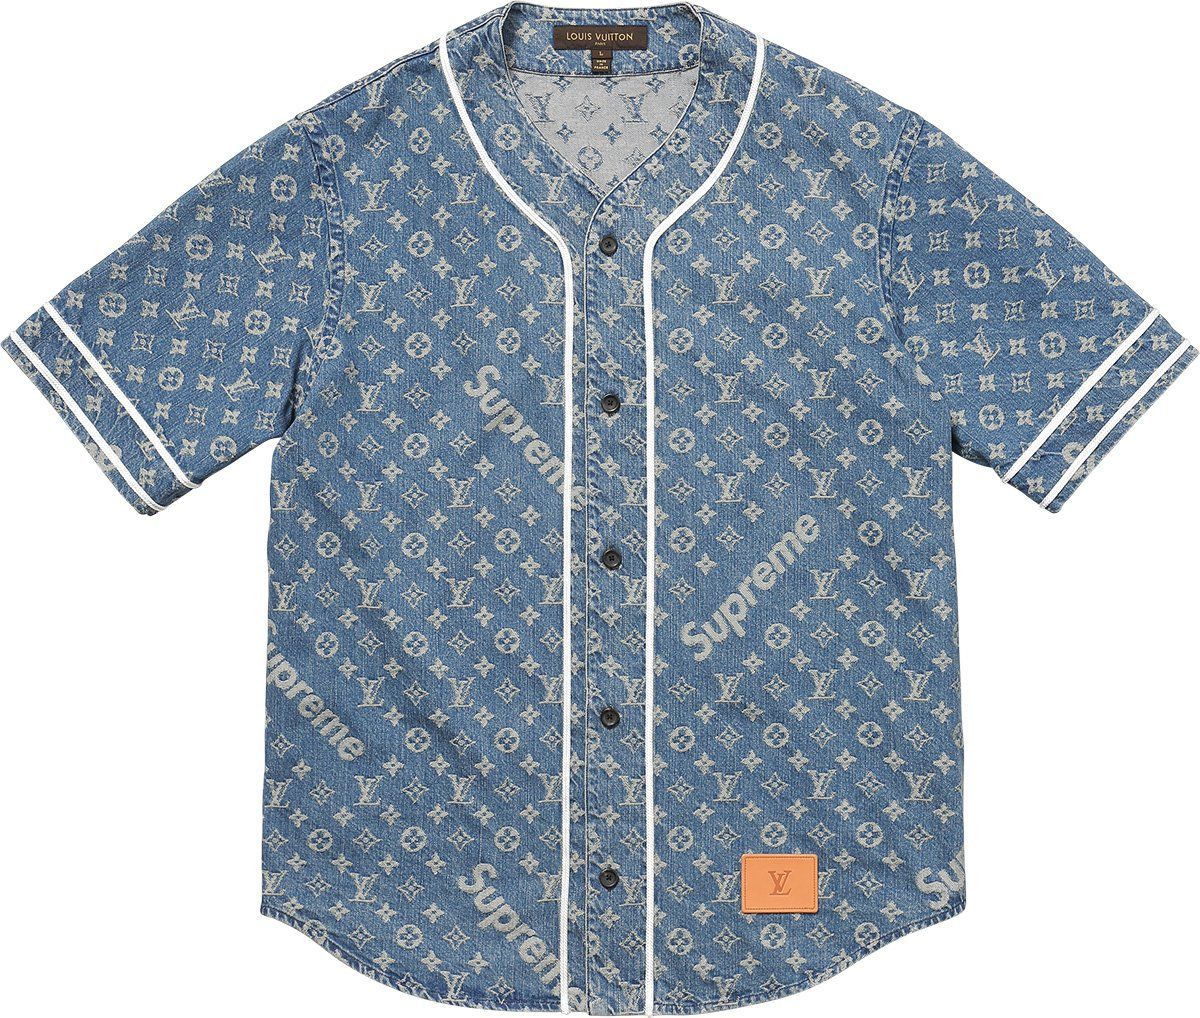 78a73abf2ab Supreme Louis Vuitton Supreme Jacquard Denim Baseball Jersey